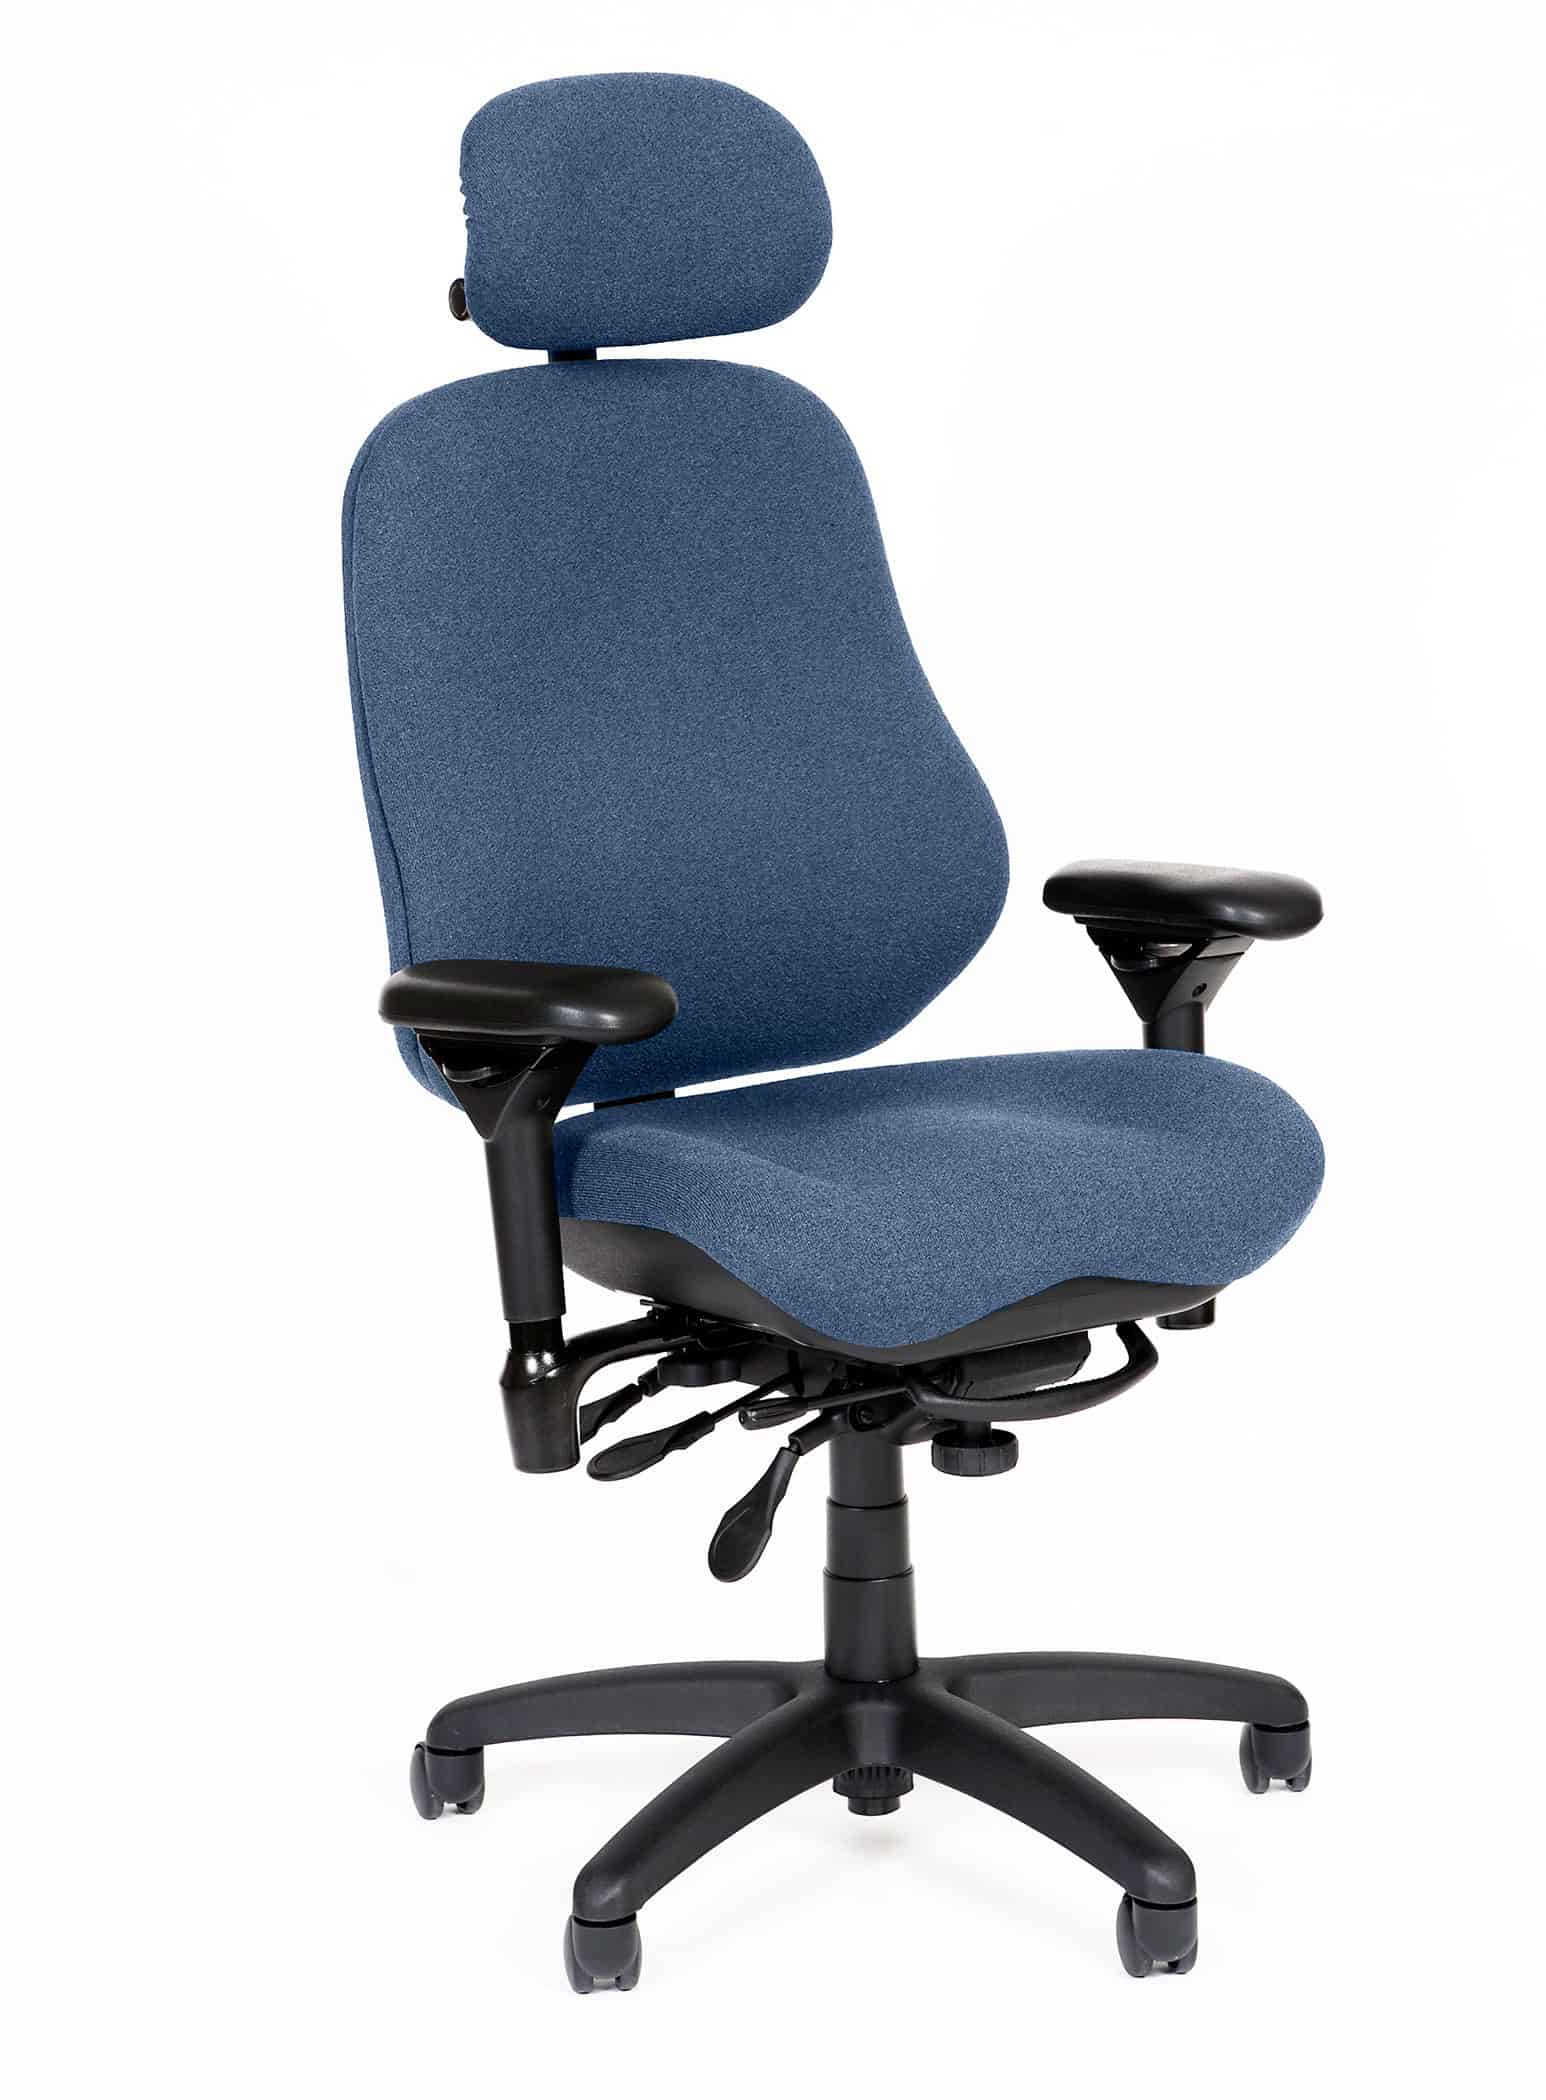 BodyBilt Chairs 24 7 Control Room 911 Emergency Call Centers 24 7